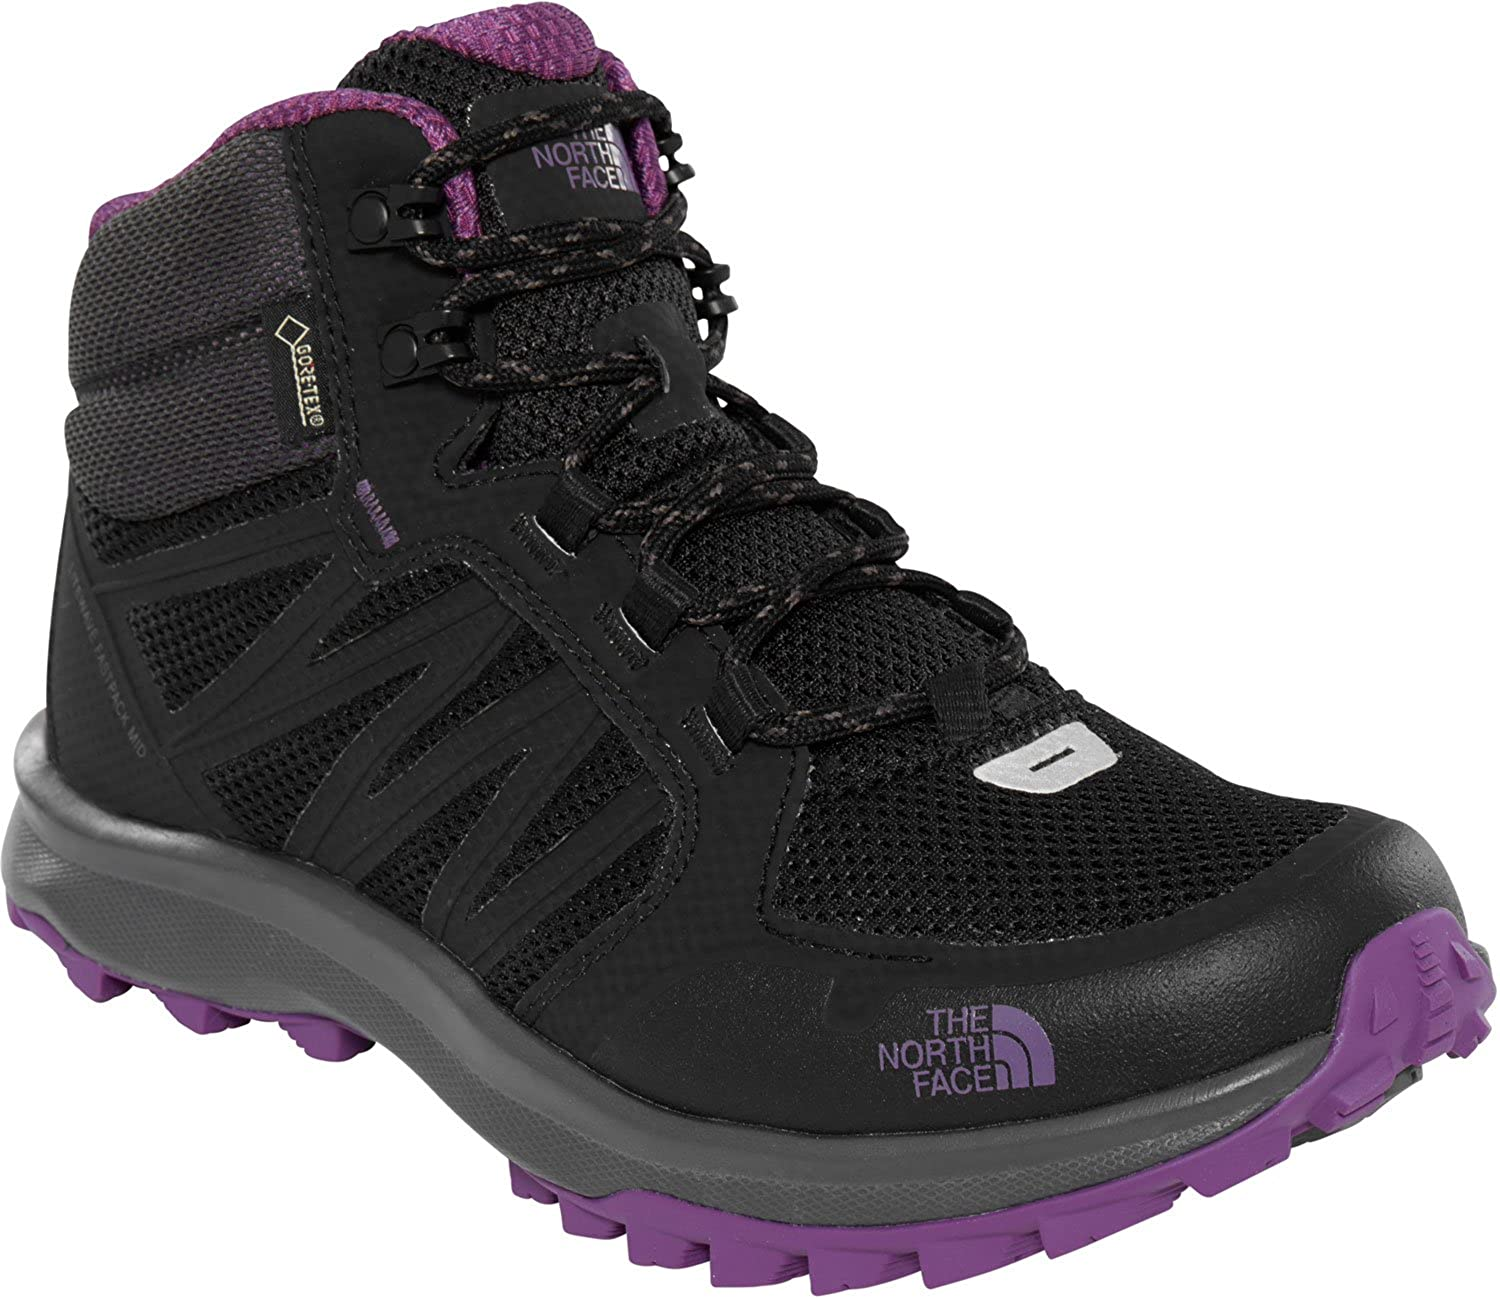 287b27fbf THE NORTH FACE Women's Litewave Fastpack Mid Gore-tex High Rise Hiking Boots